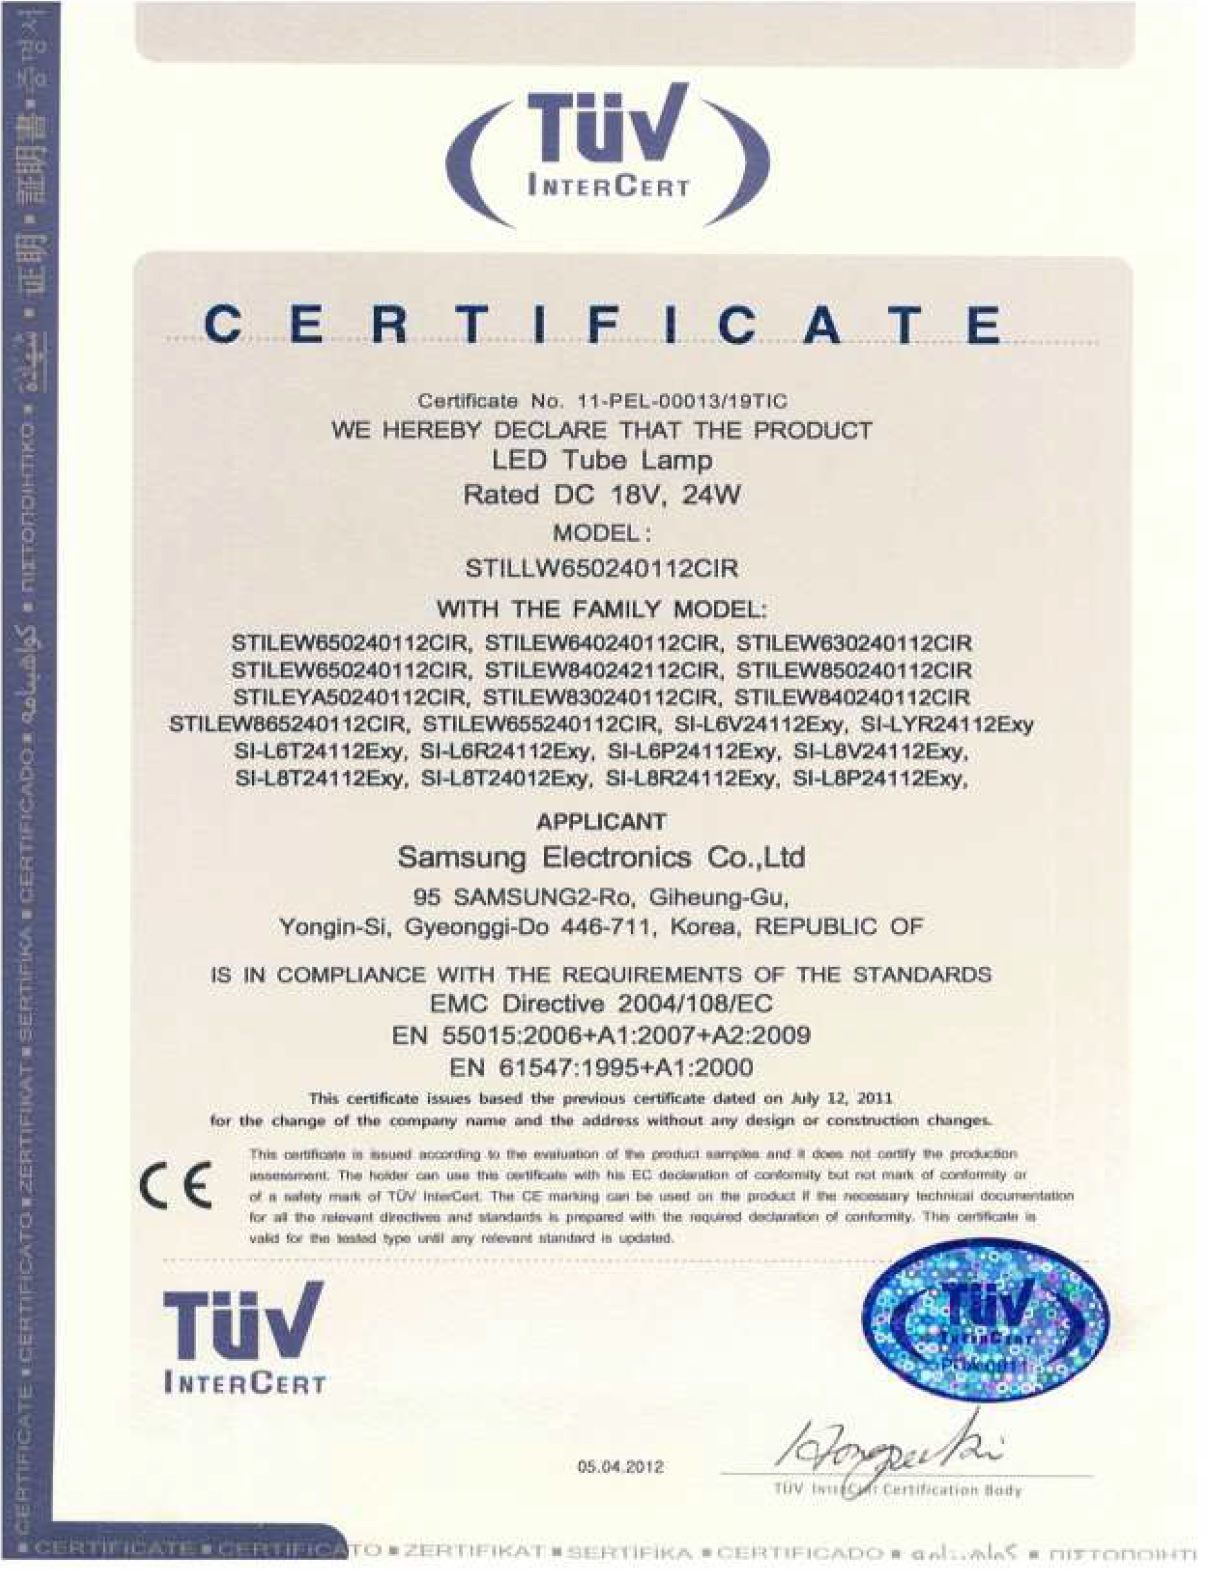 samsung_certification_t1200_ce